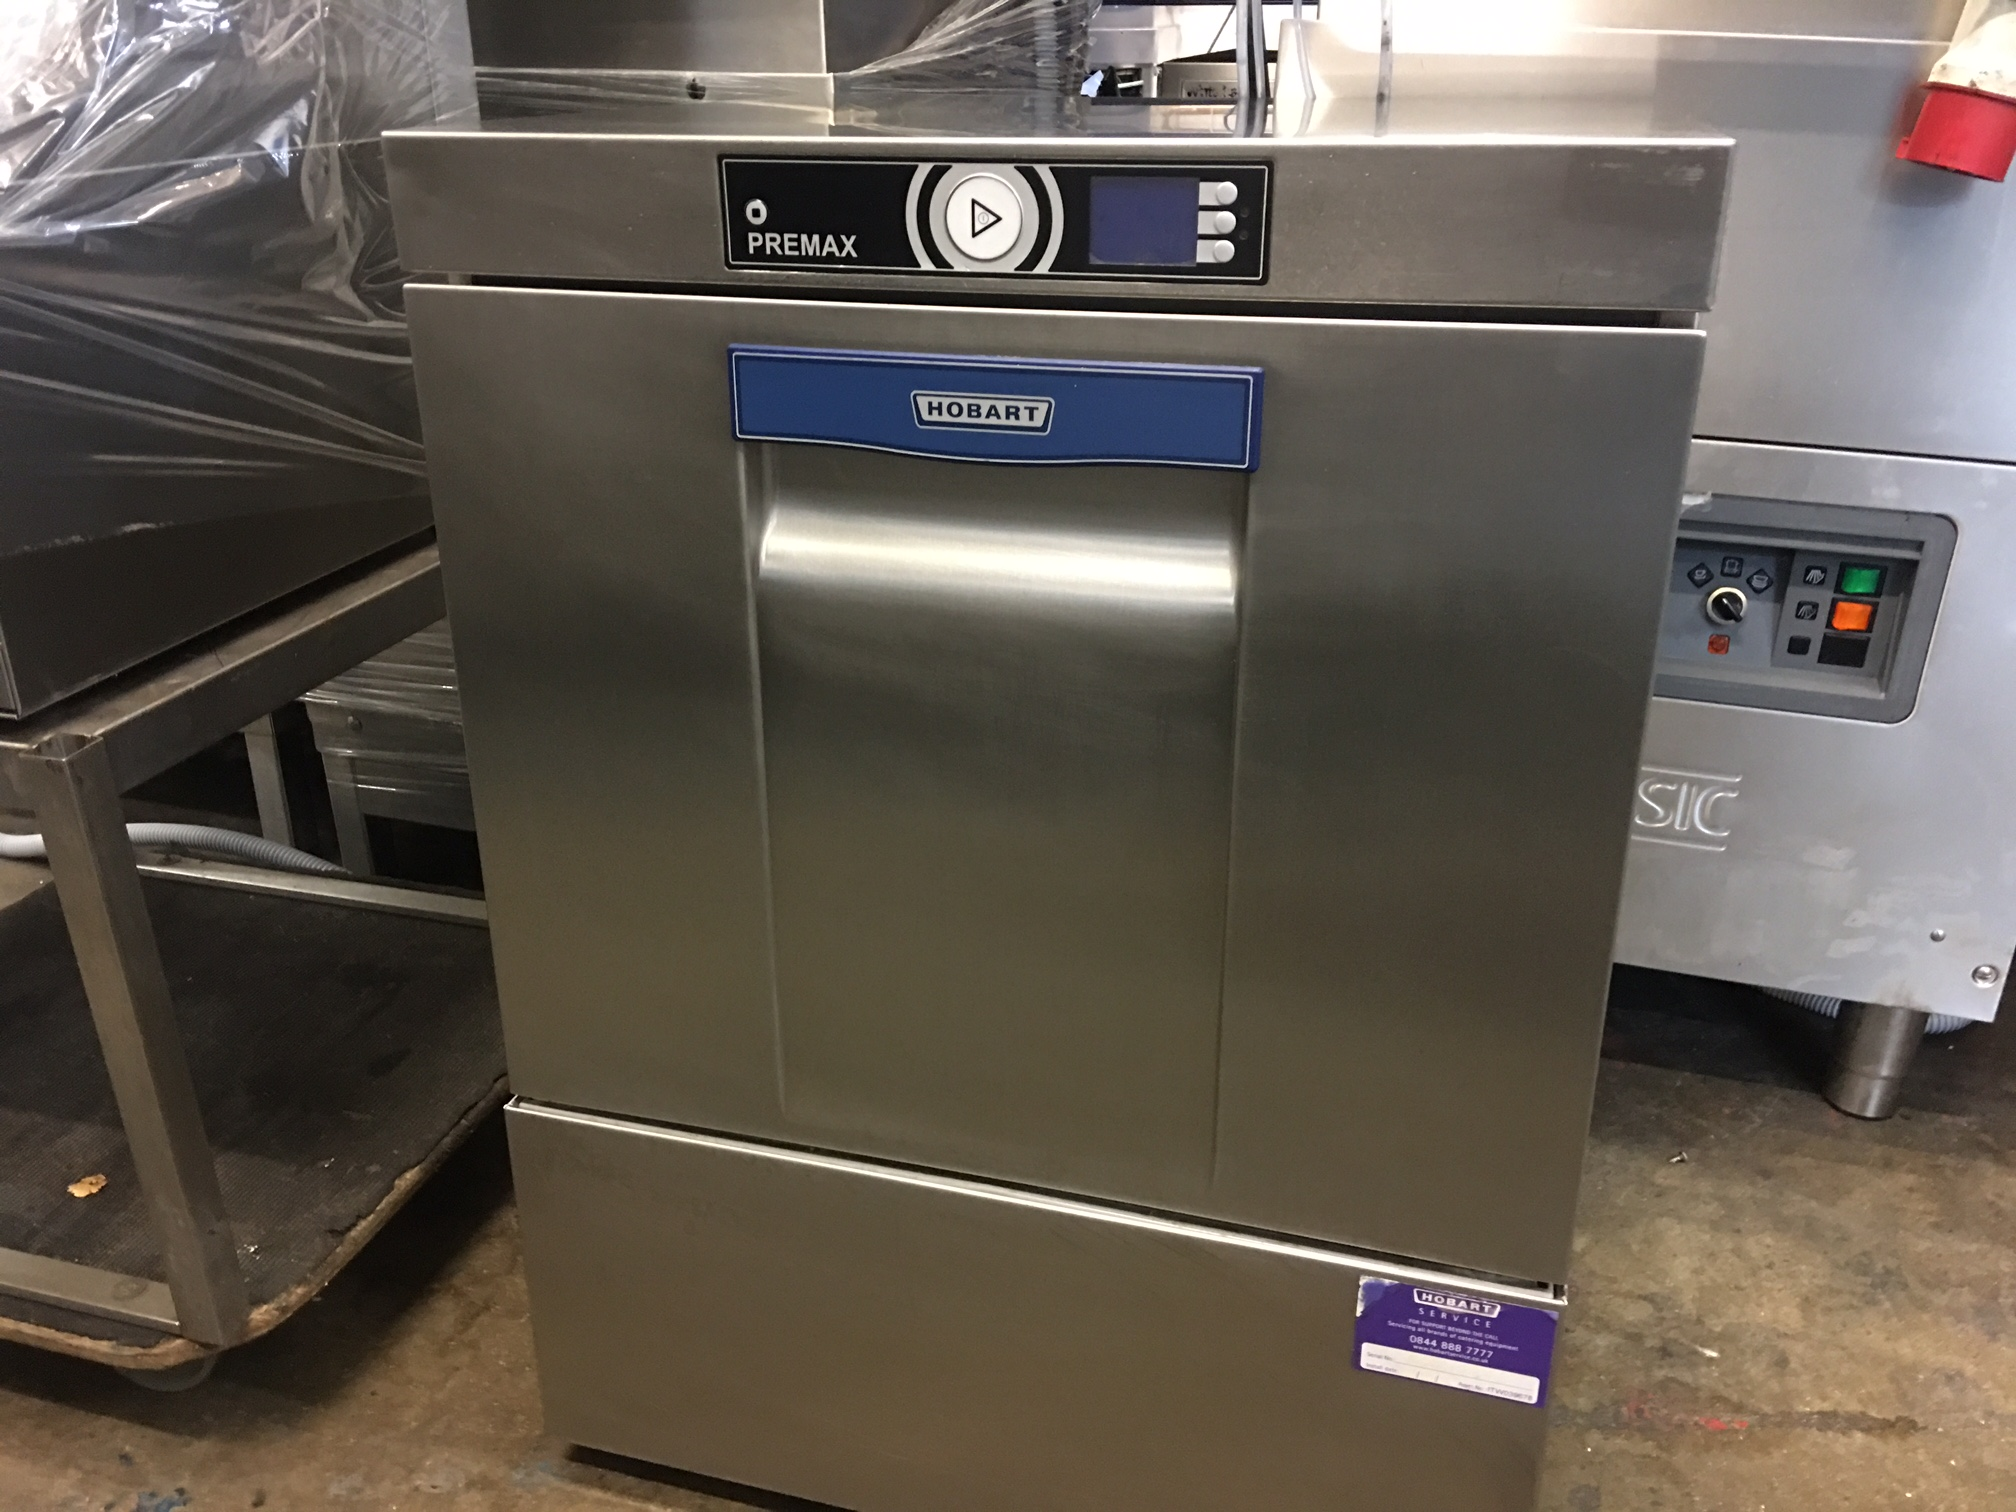 Pre Max Hobart Under Counter Dishwasher 2014 model (we have 2 of these in  stock)